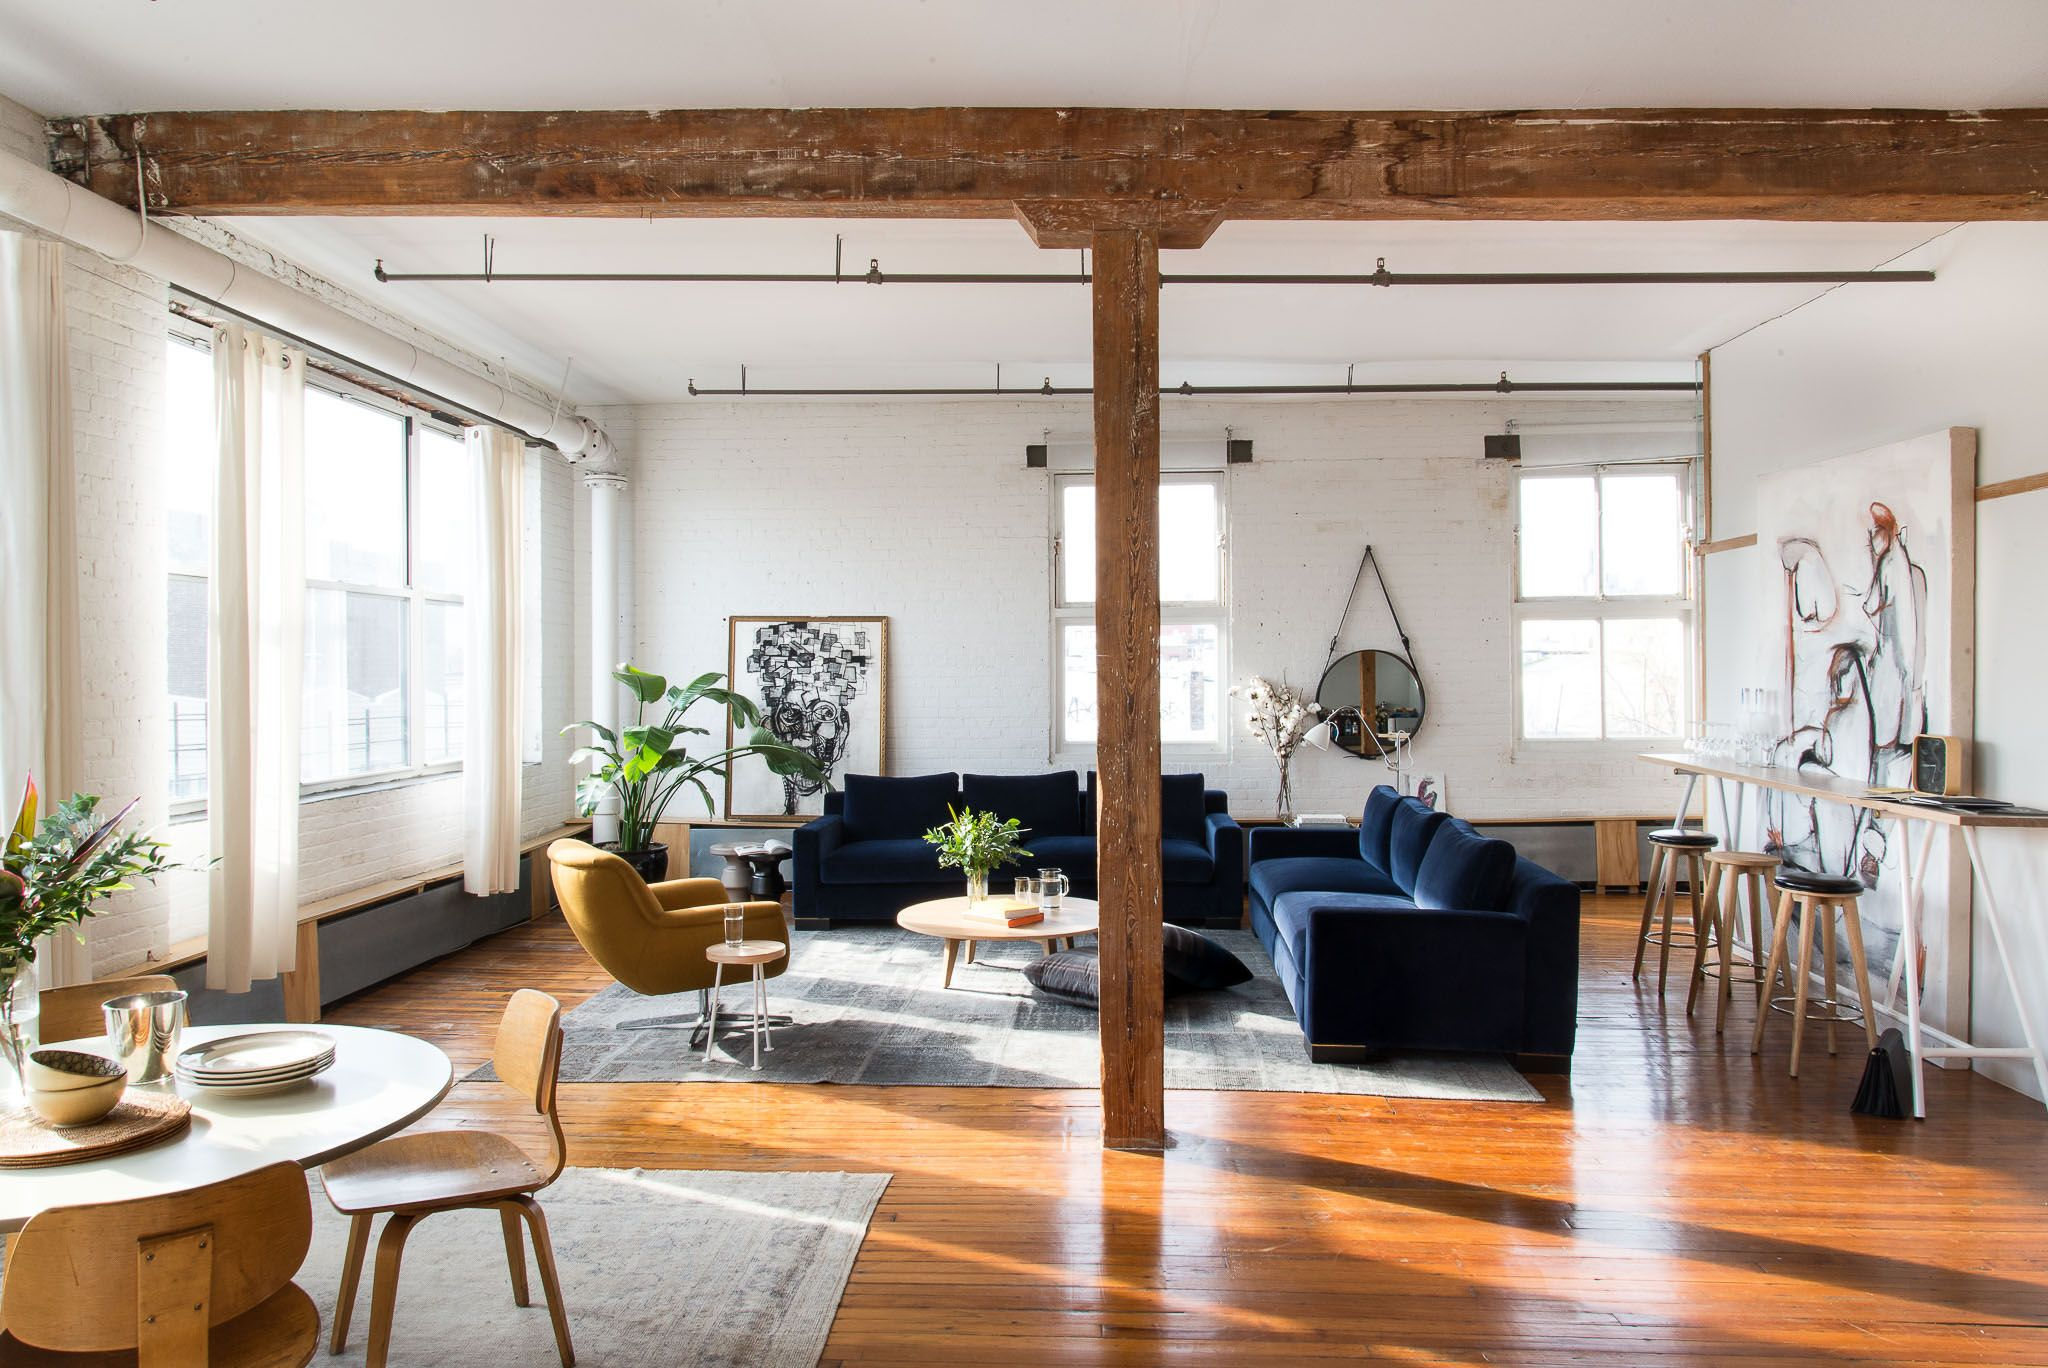 Rustic, Industrial Living Room Vibes | Interiors | Pinterest | Loft ...